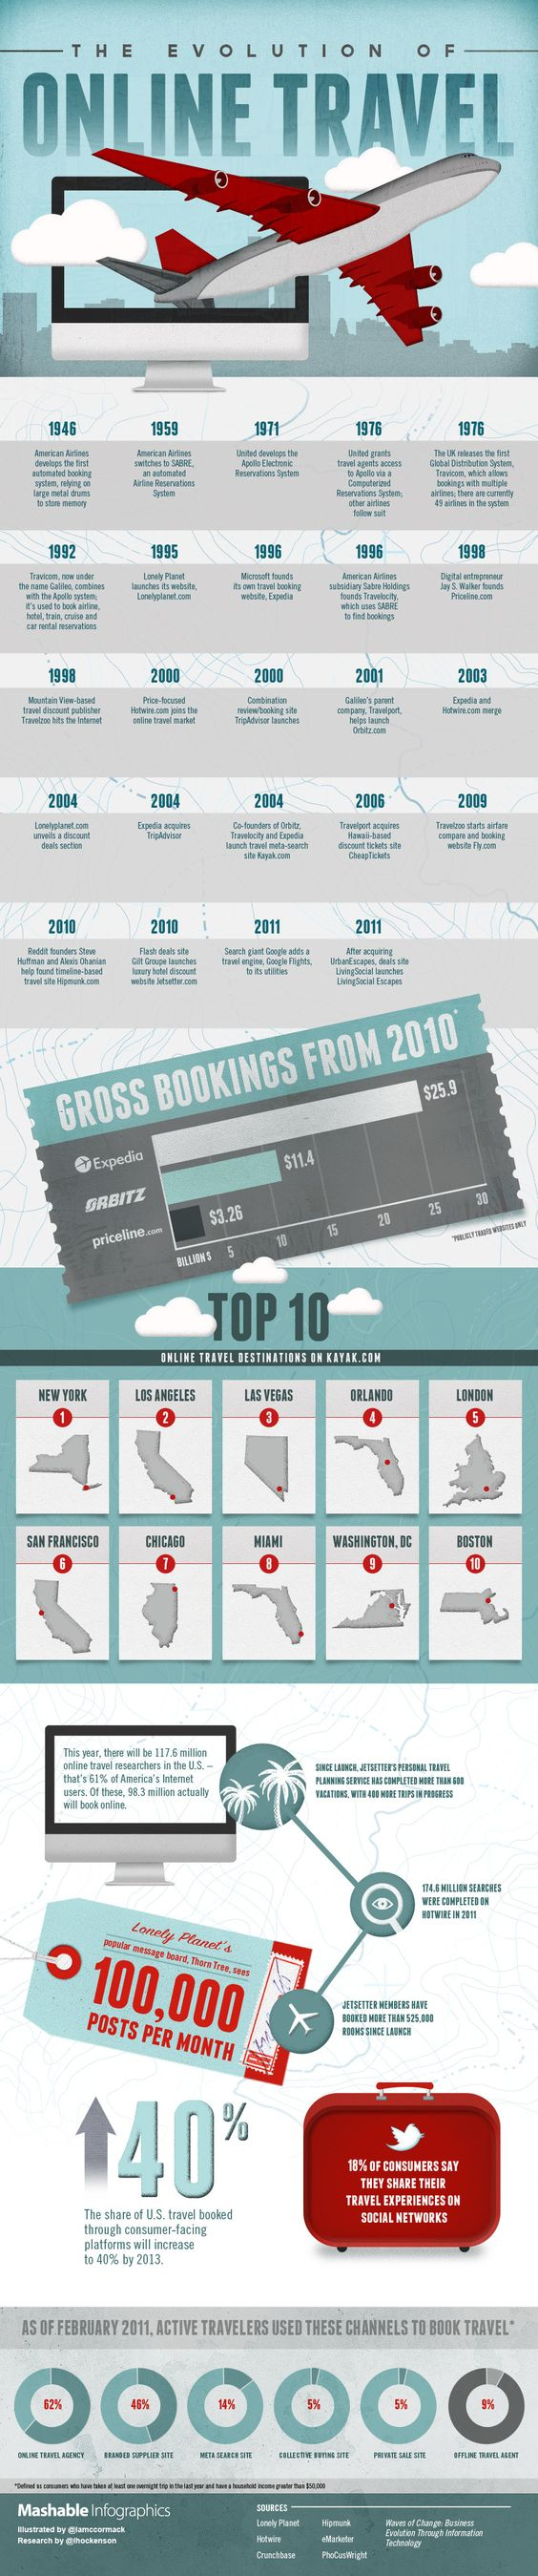 """[infographic] """"The Evolution of Online Travel"""" Feb-2012 by @Mashable.  From 1946 to 2011 year of launch/Merger of main Online Travel agencies and their ancestors."""